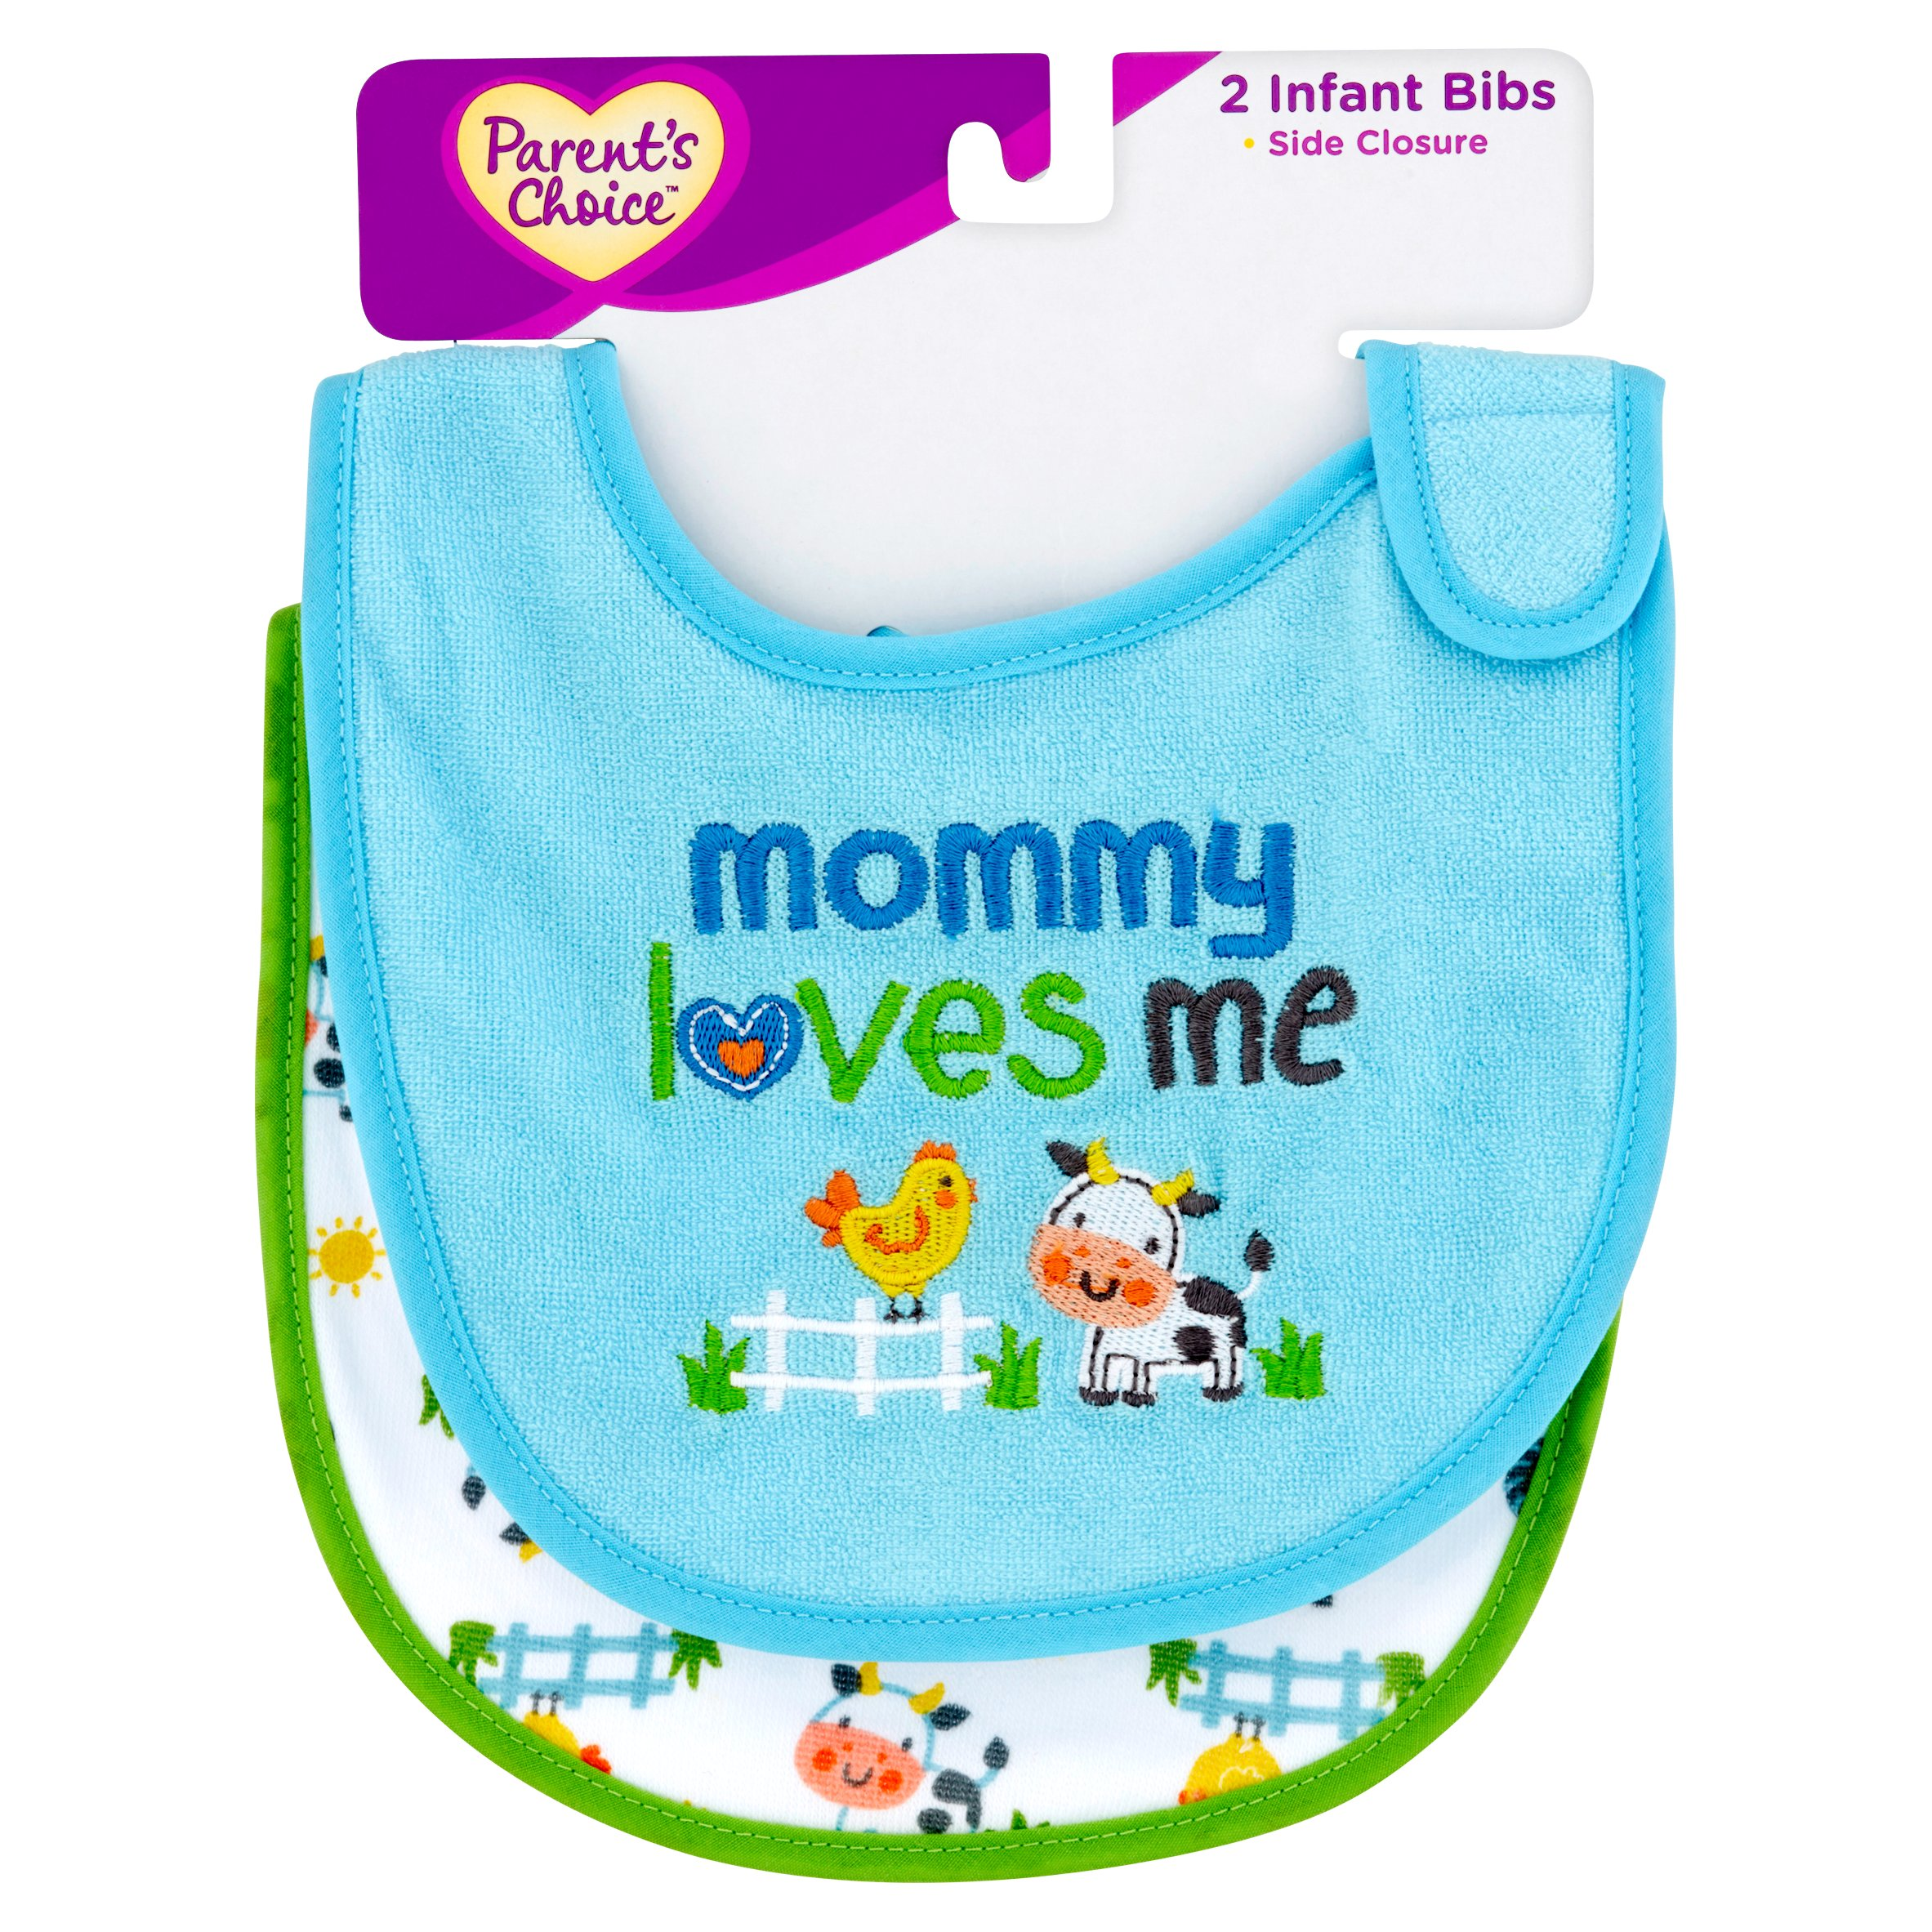 Parent's Choice Side Closure Infant Bibs, 2 count